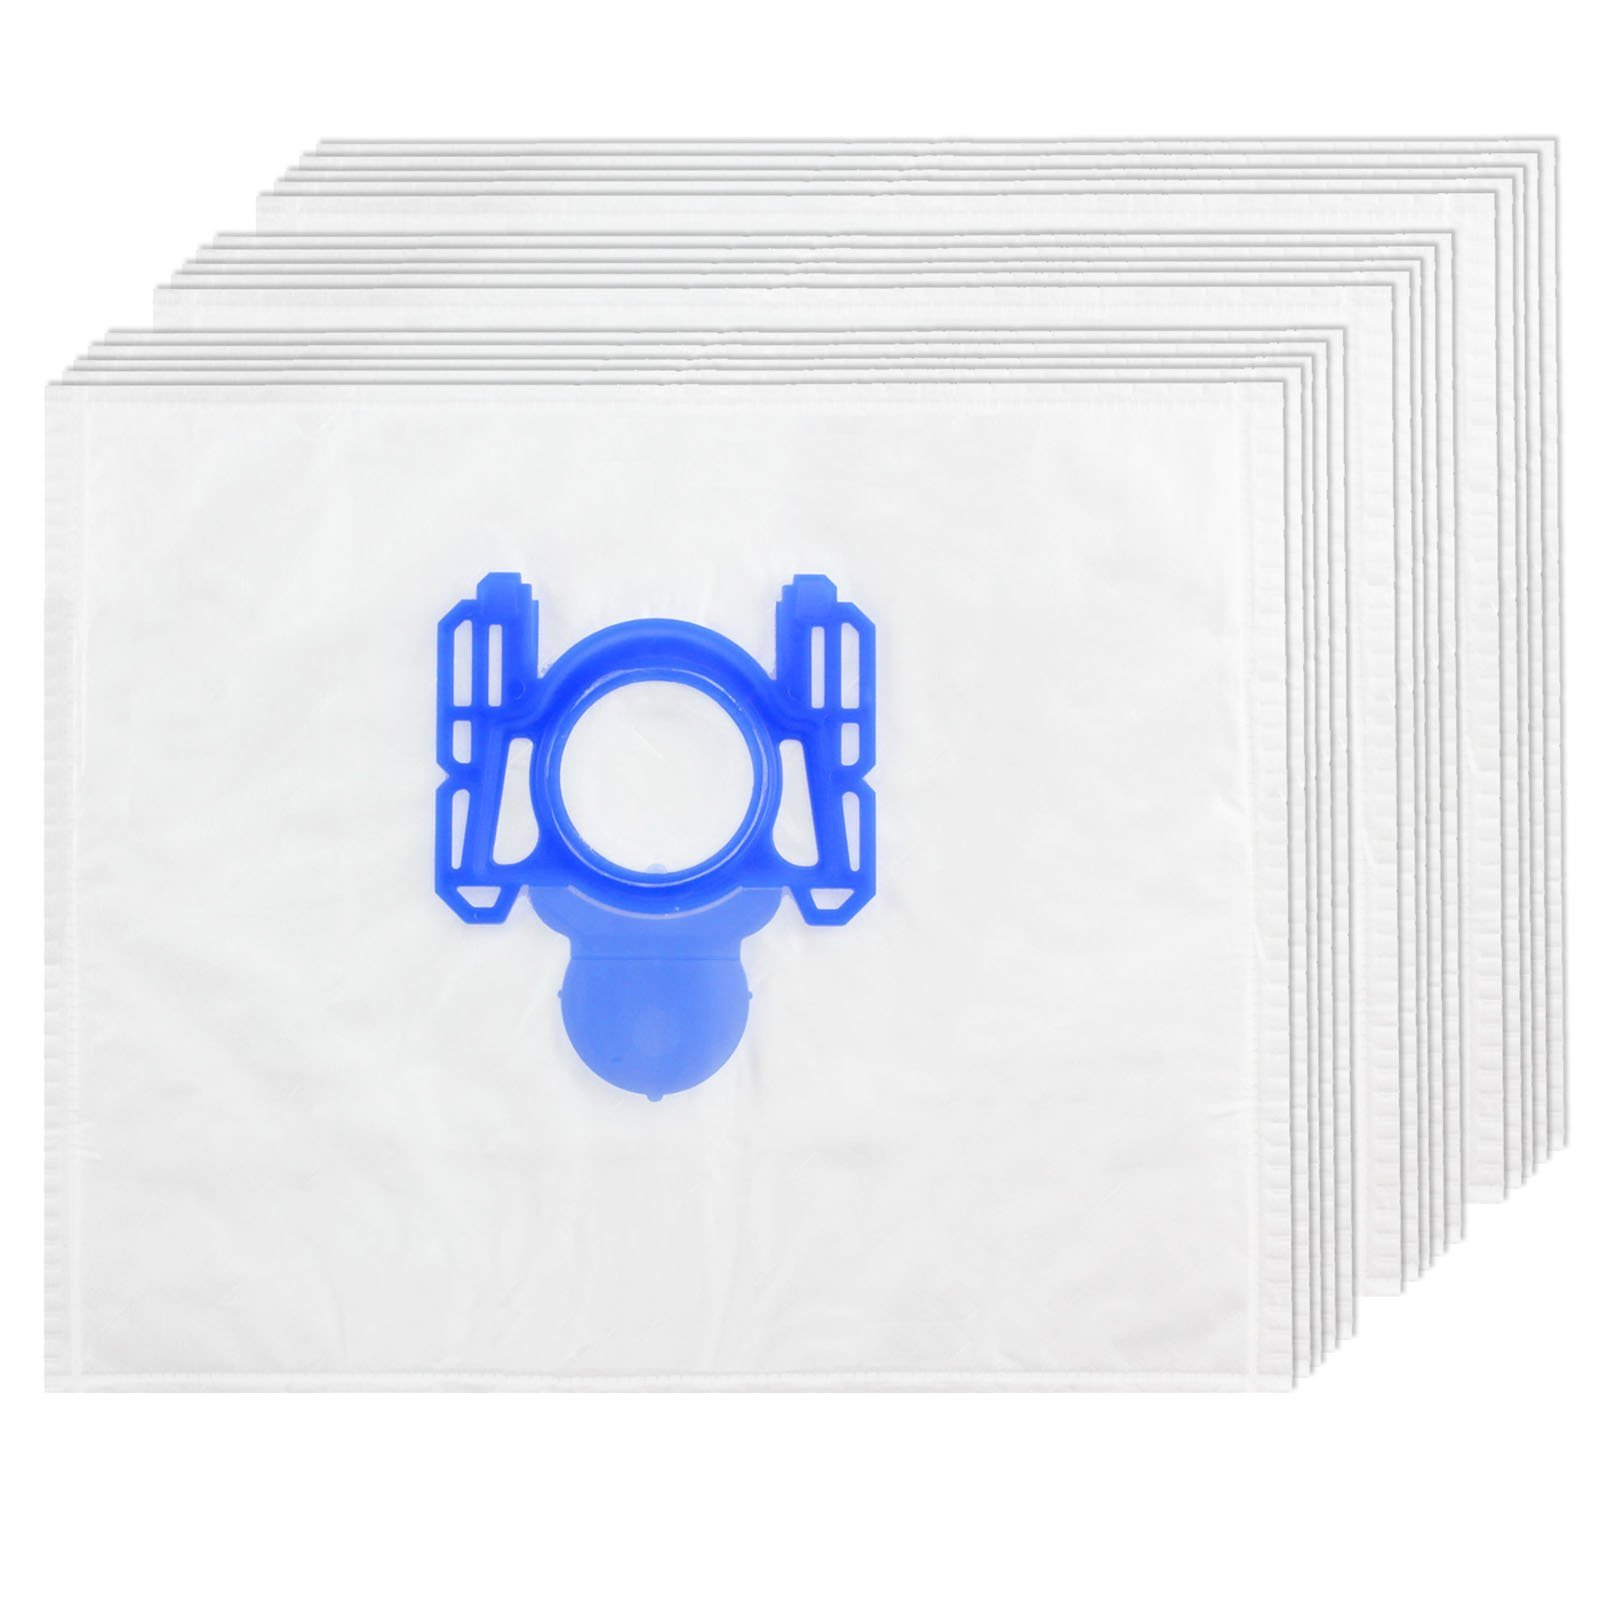 Spares2go Microfibre Cloth Bags For Progress Vacuum Cleaner (Pack of 15) by Spares2go